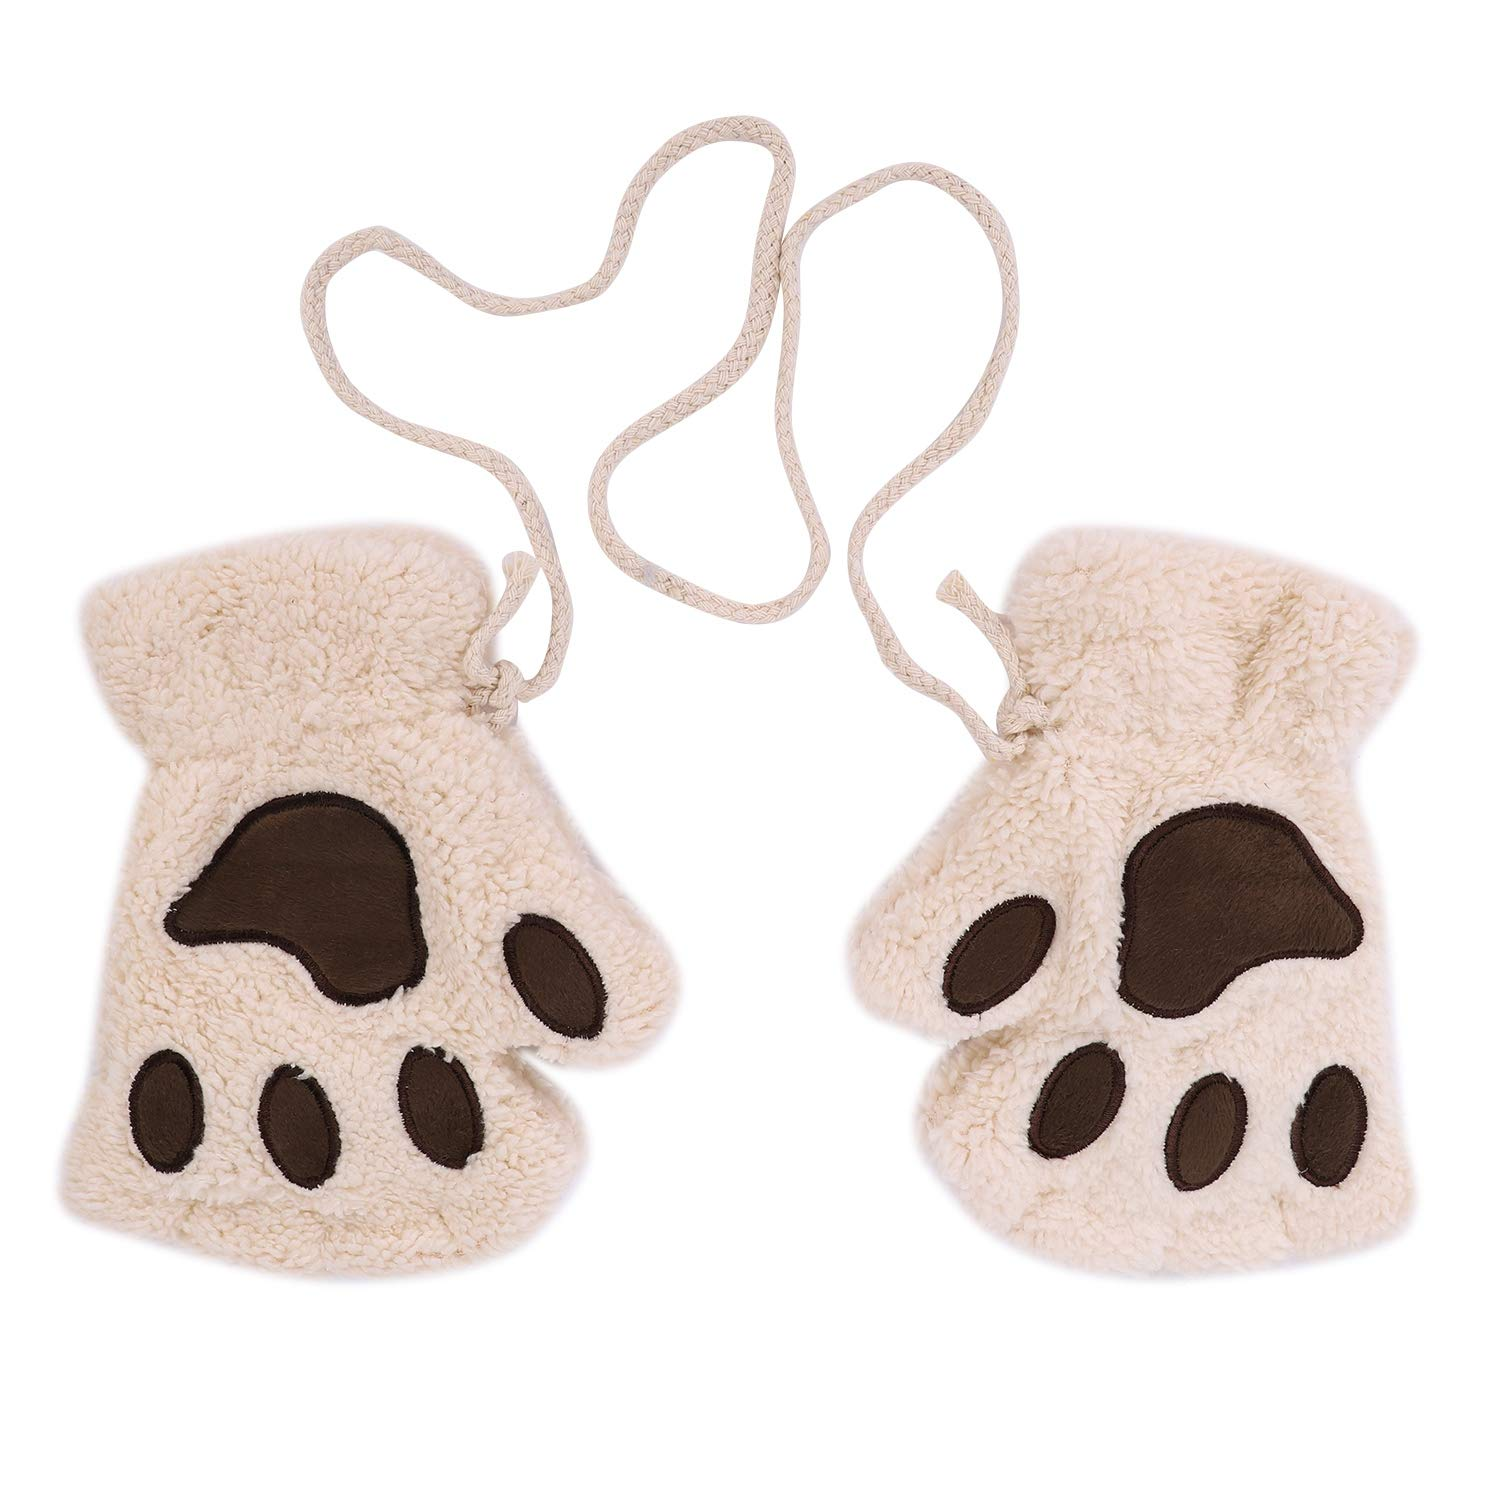 Girls Boys Faux Fur Gloves Cute Paw Gloves Mittens Half Finger Gloves with Anti-lost String Hanging Neck Gloves Mittens Warm Plush Gloves Thermal Skiing Gloves Hand Warmers Birthday Xmas Gift